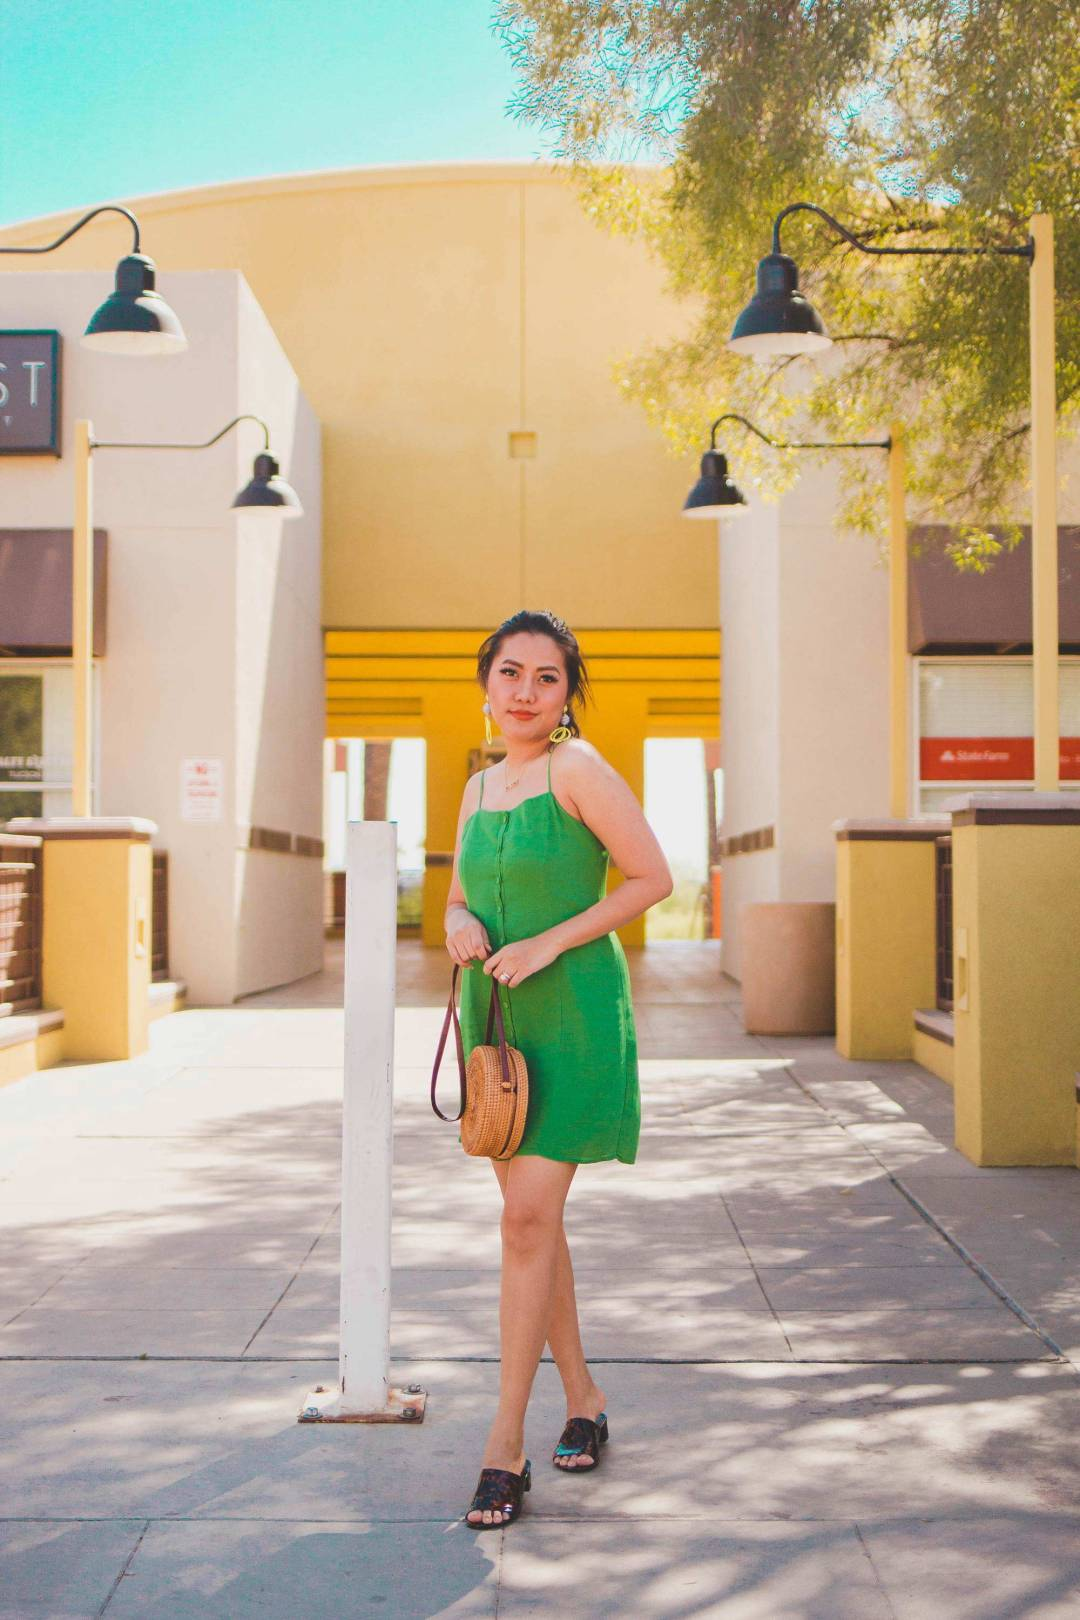 Fashion Style Blogger Molly Larsen form Allaboutgoodvibes.com wearing Inexpensive Summer Dress in Green standing in front of Yellow building